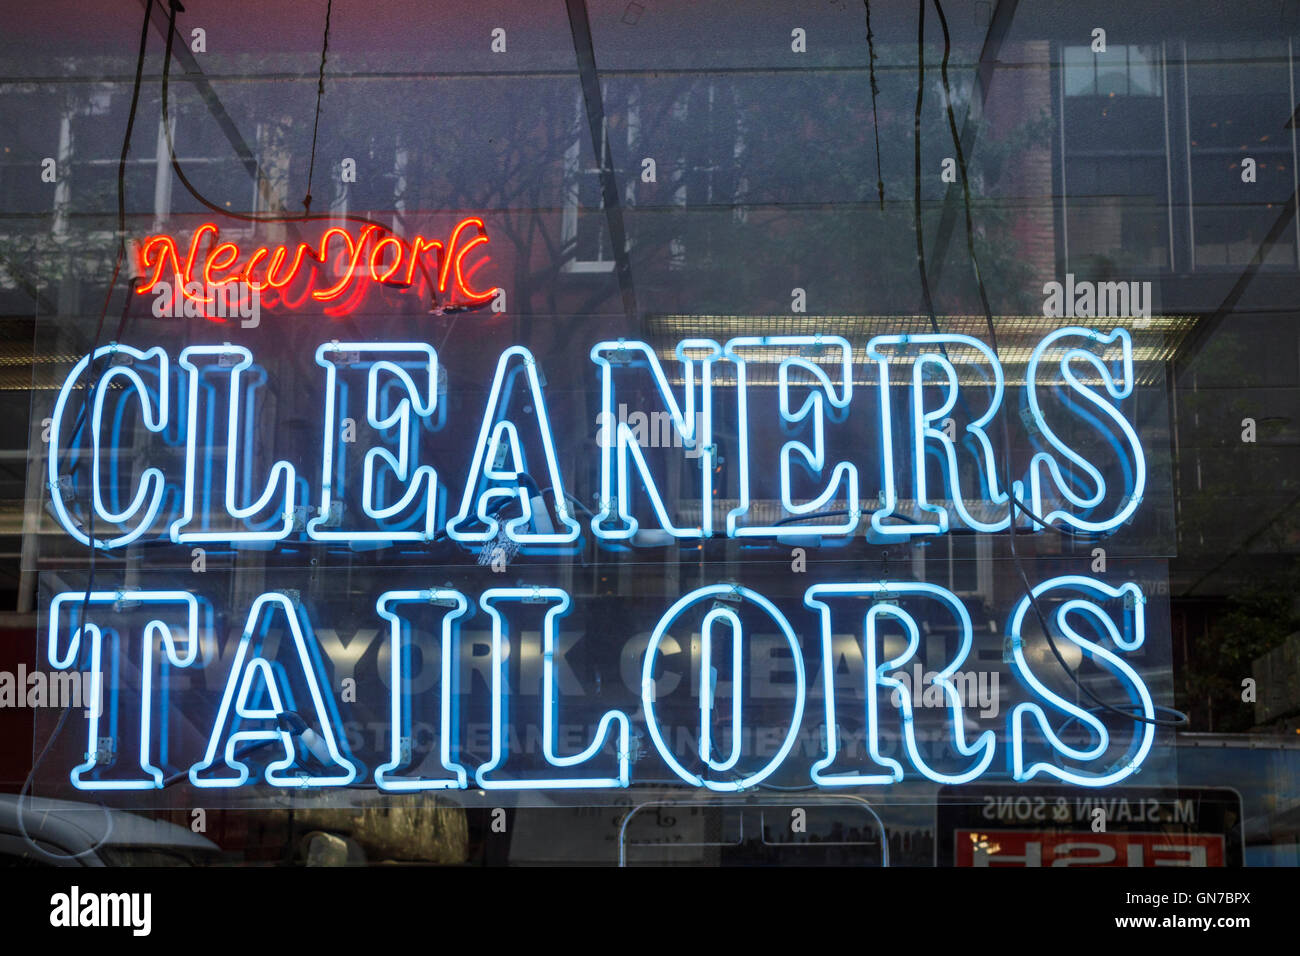 New York City Dry Cleaners Stock Photos & New York City Dry Cleaners ...